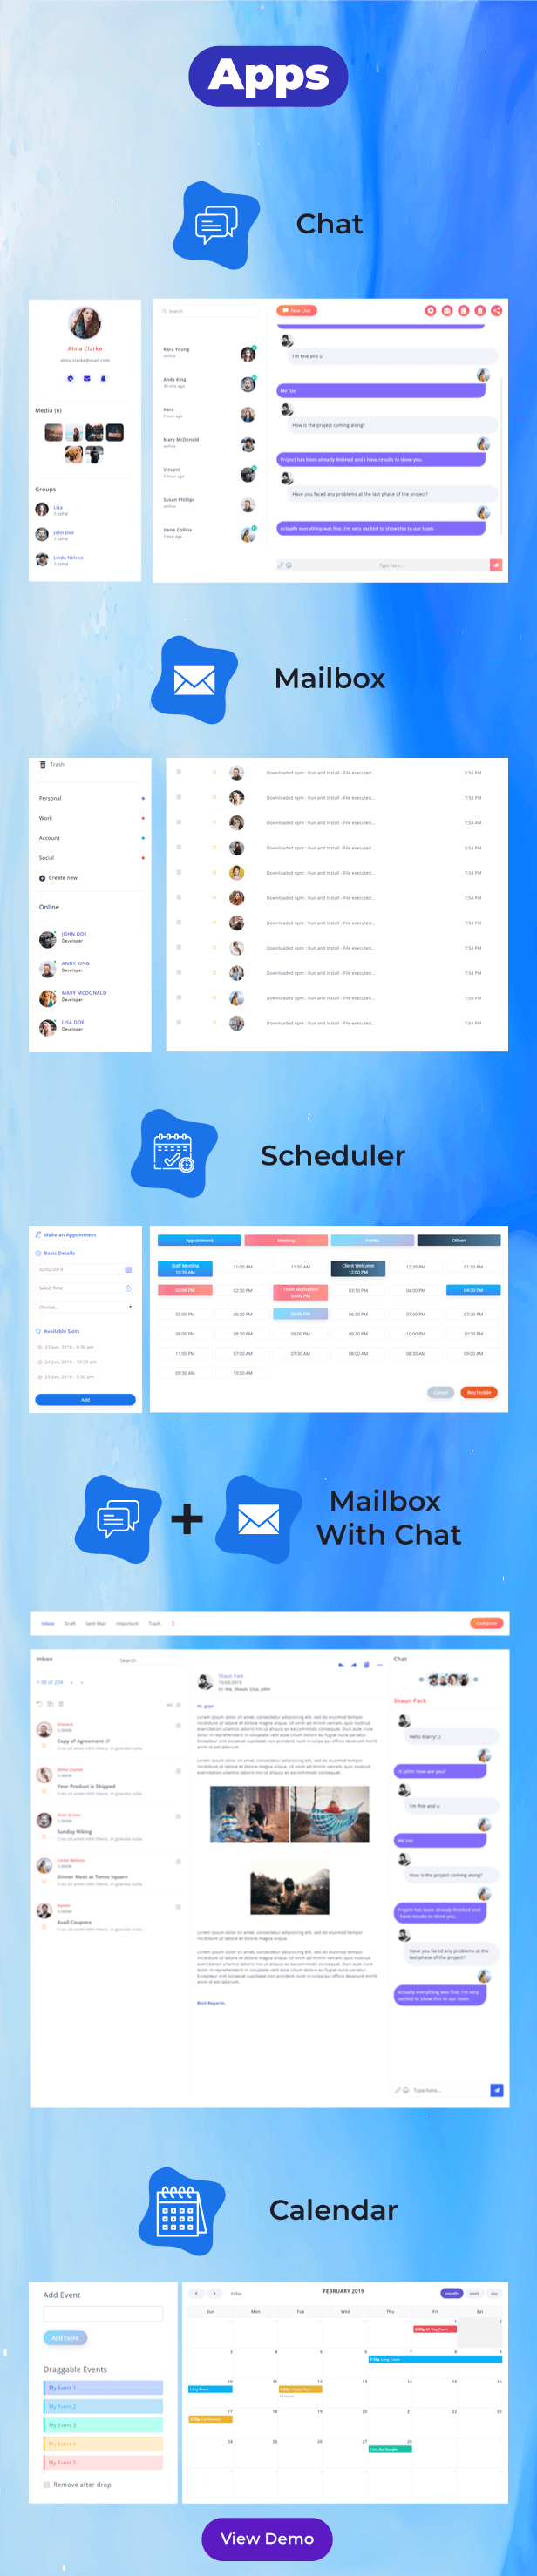 Equation - Responsive Admin Dashboard Template - 2